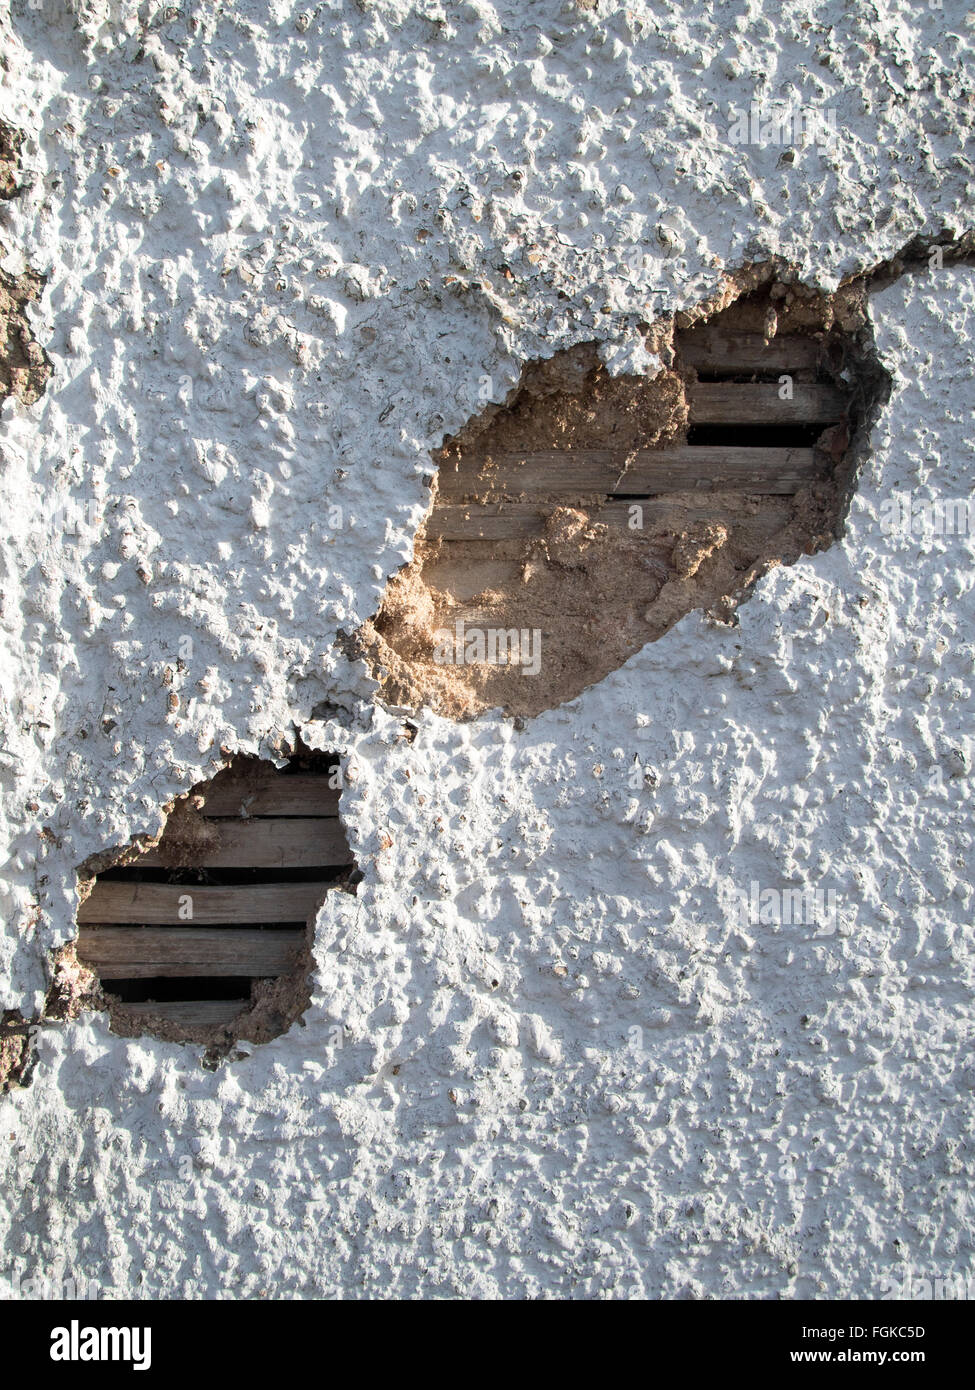 Wattle and daub - a damaged wall on a medieval building in Suffolk, England. - Stock Image